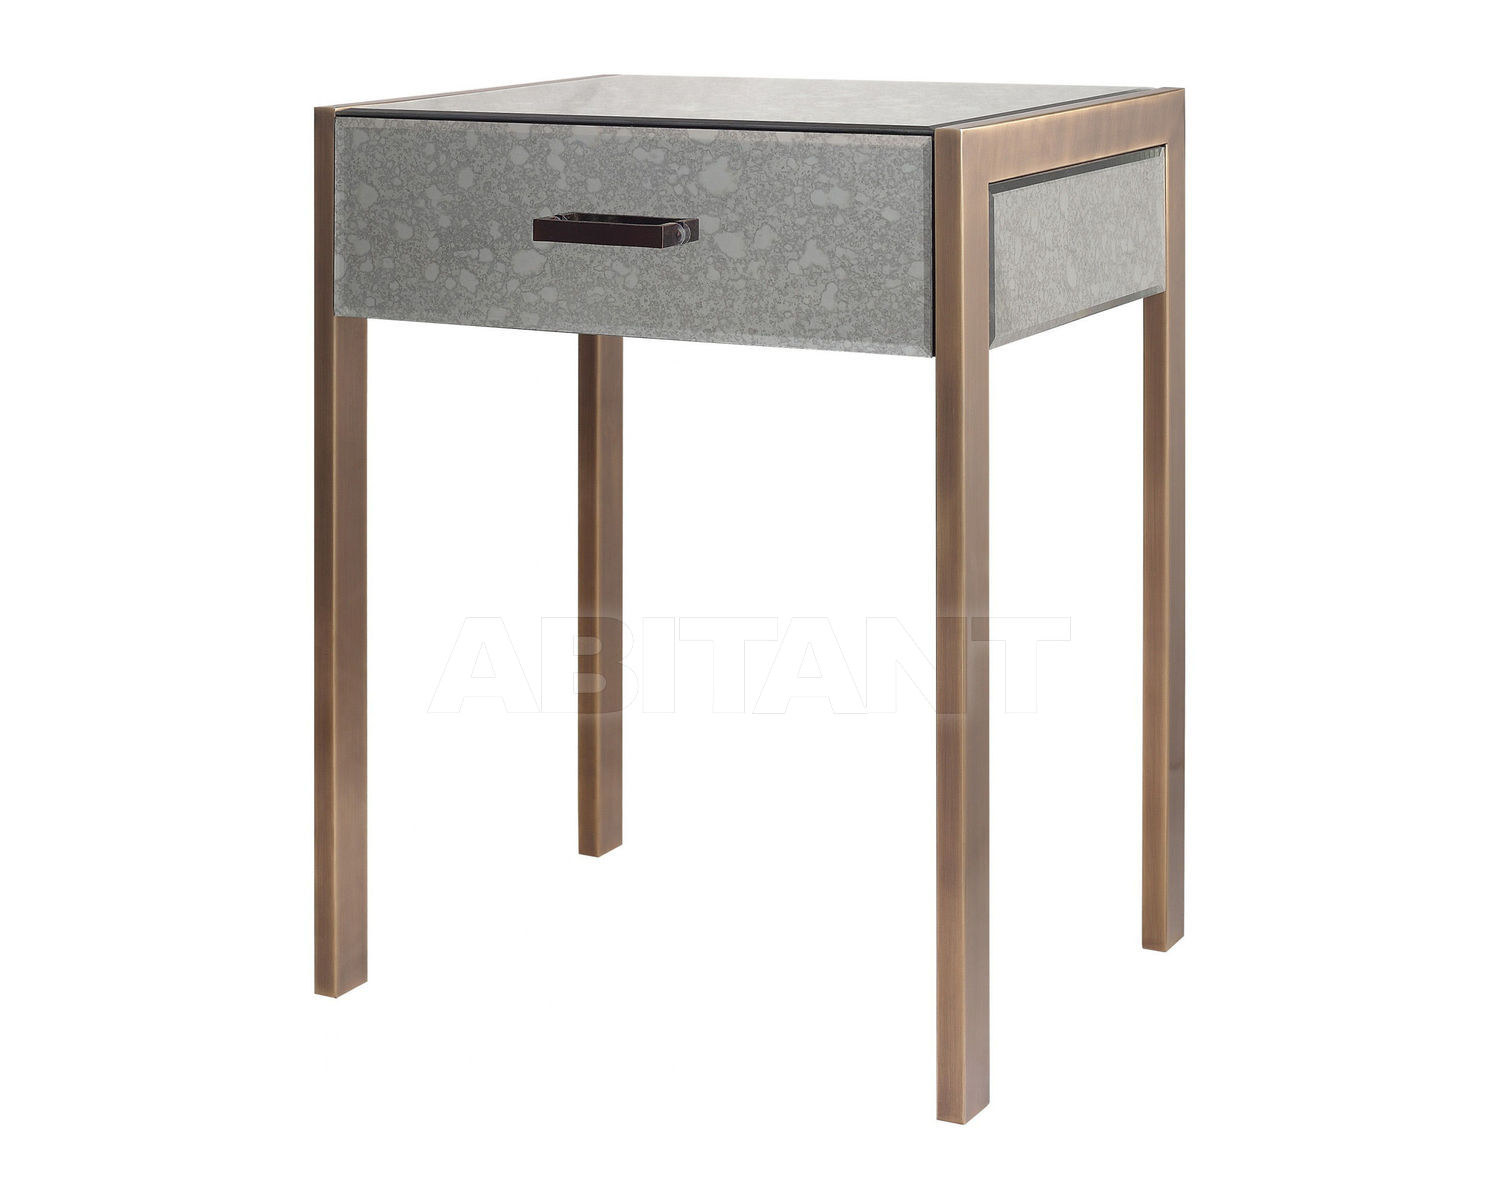 Charmant Buy Side Table R.V.Astley Furniture 8081